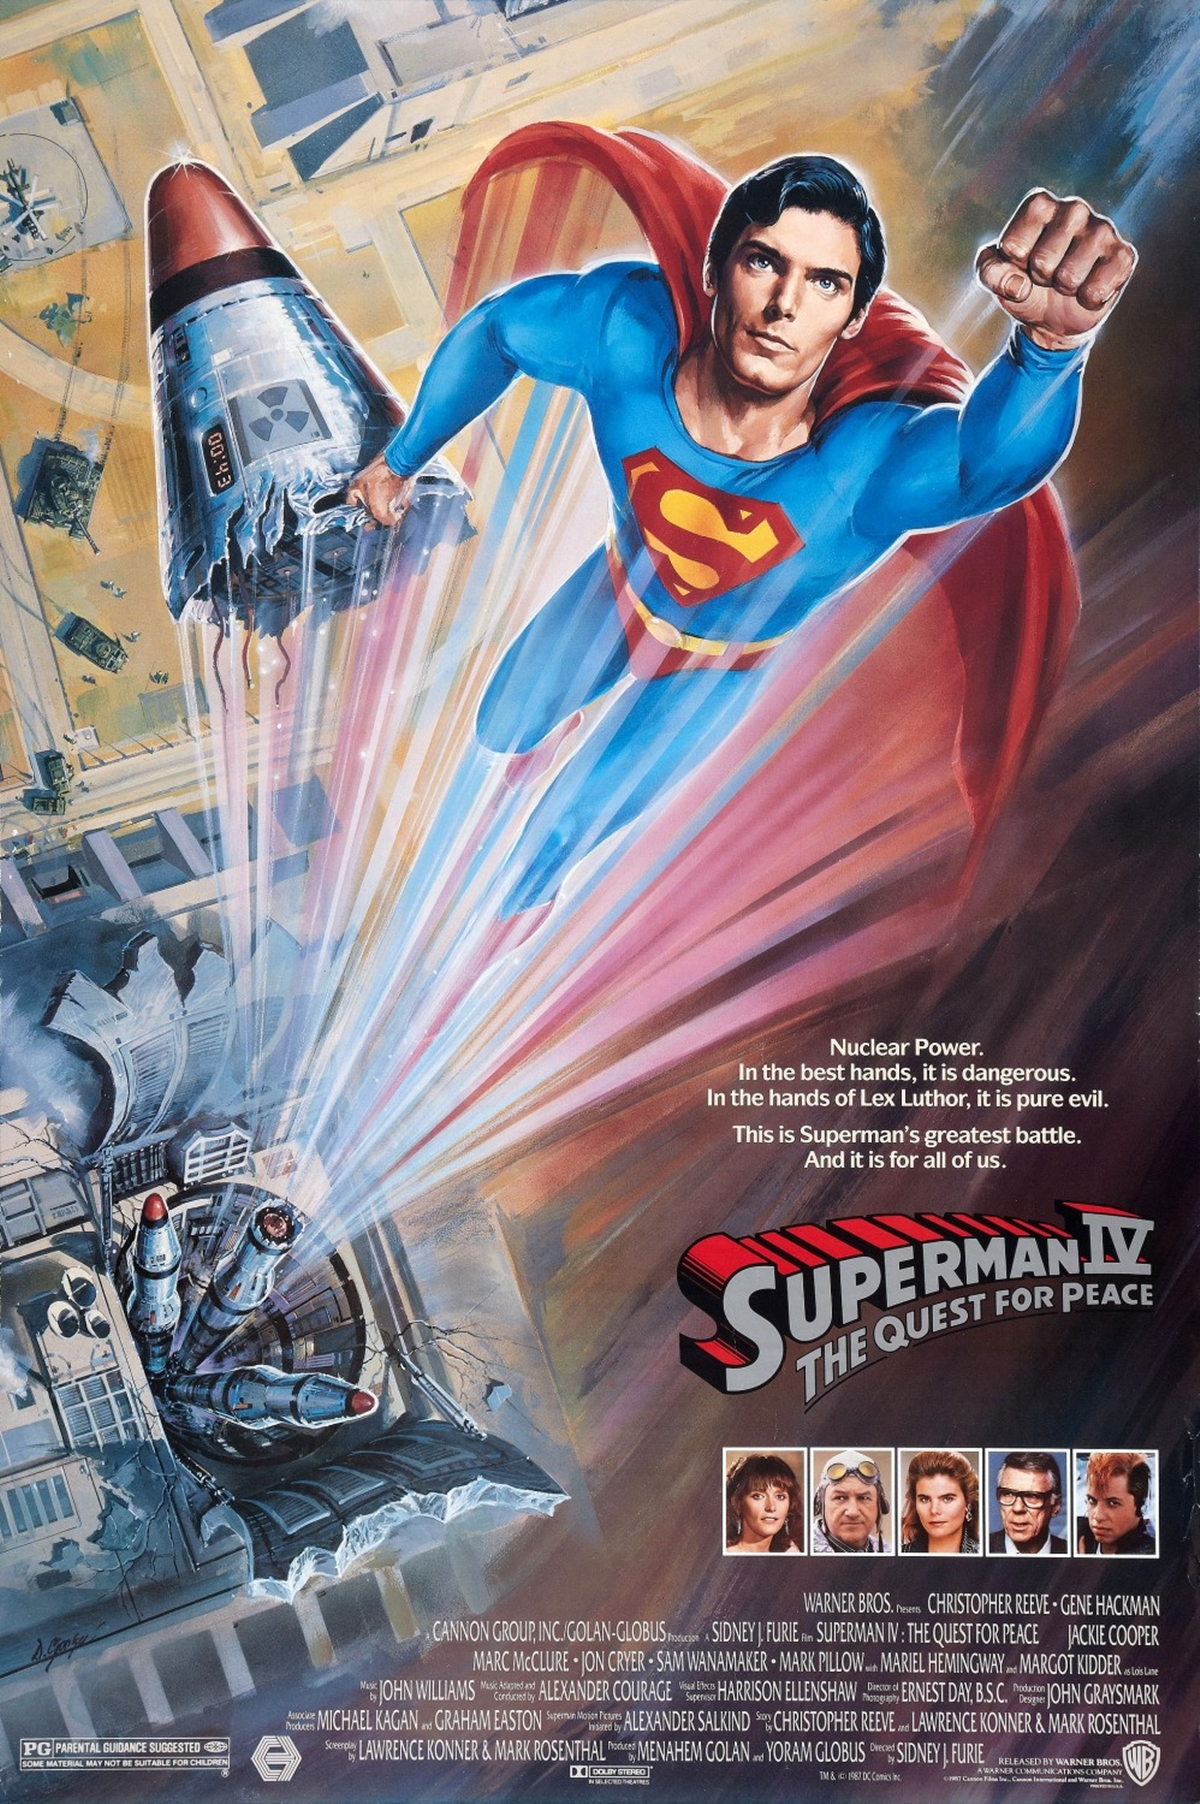 11 10 12 Things You May Have Missed In Christopher Reeve's Superman Films